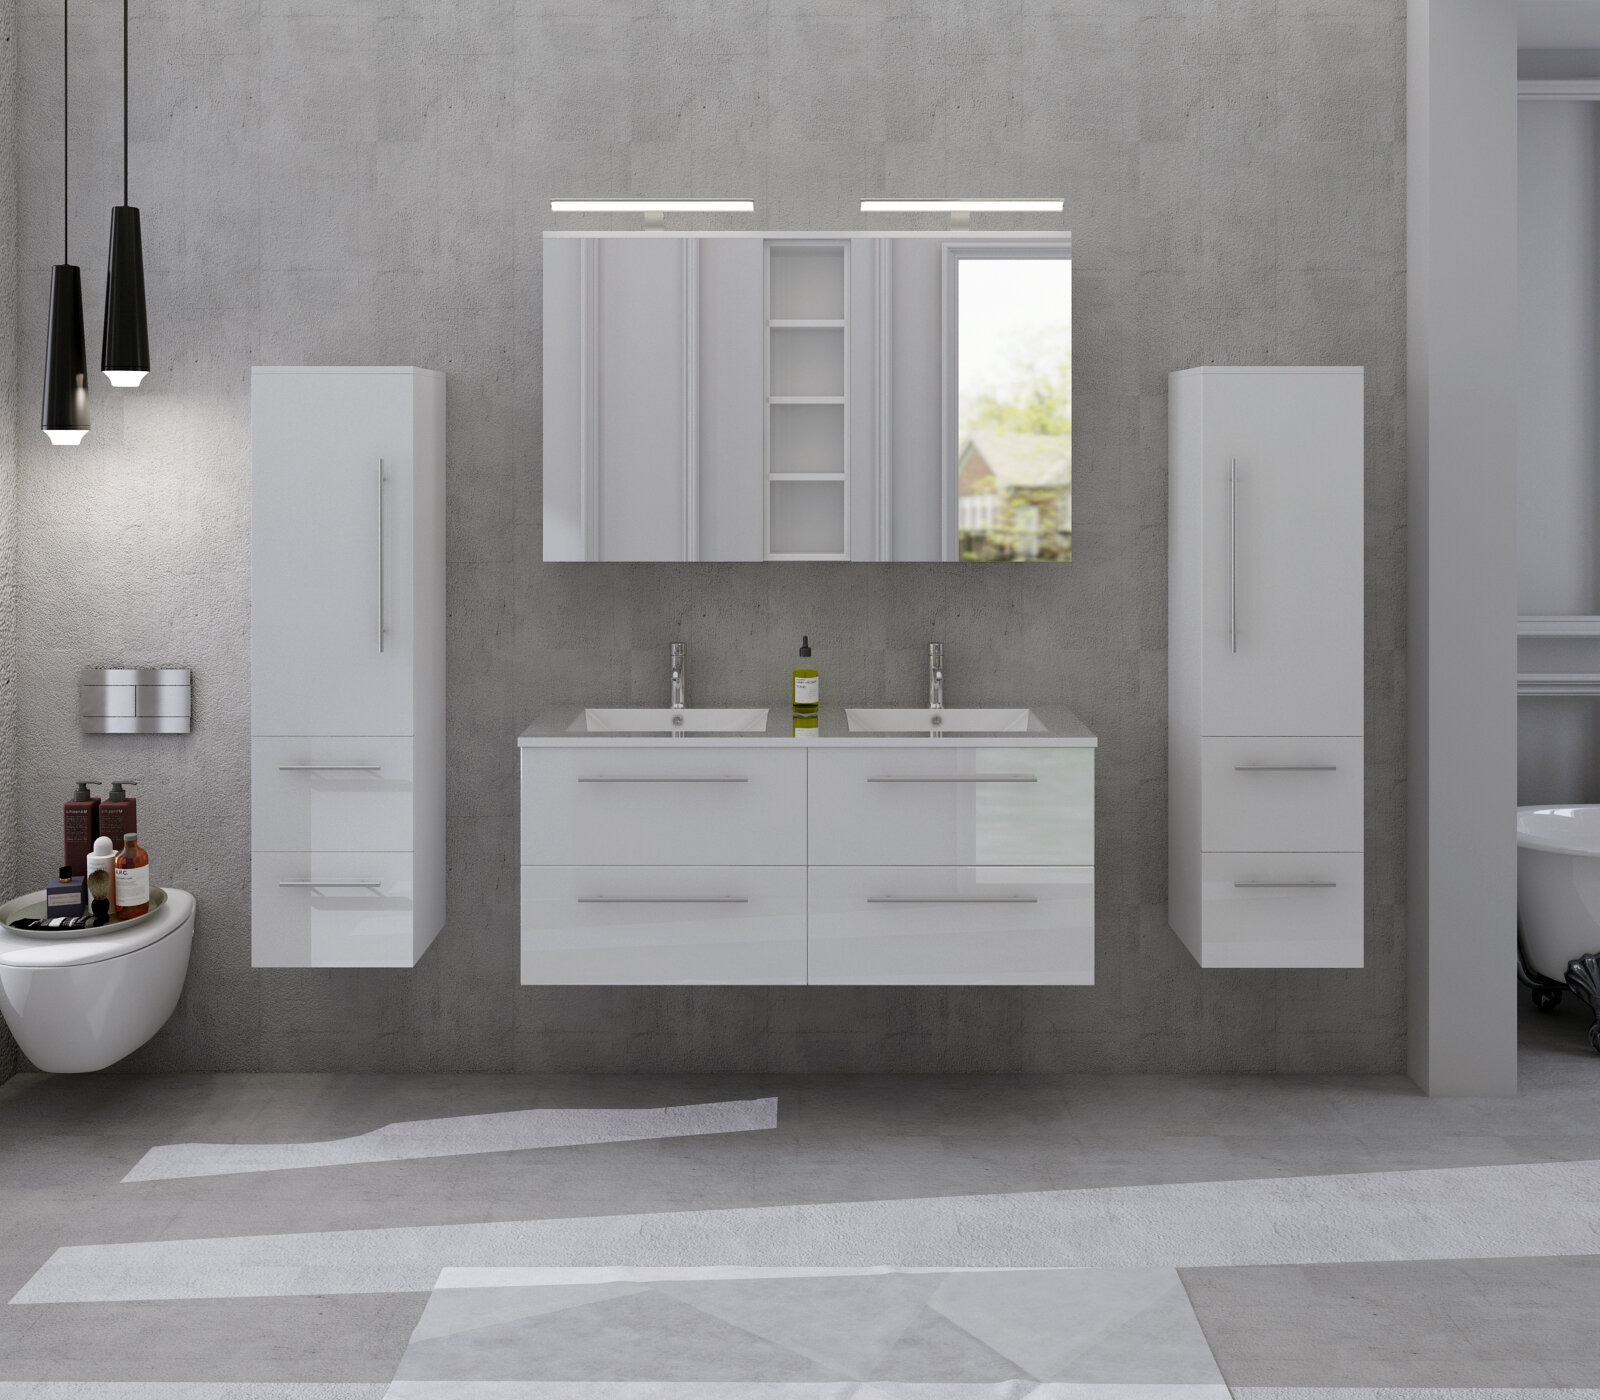 Barina 10cm x 10cm Wall Mounted Bathroom Set